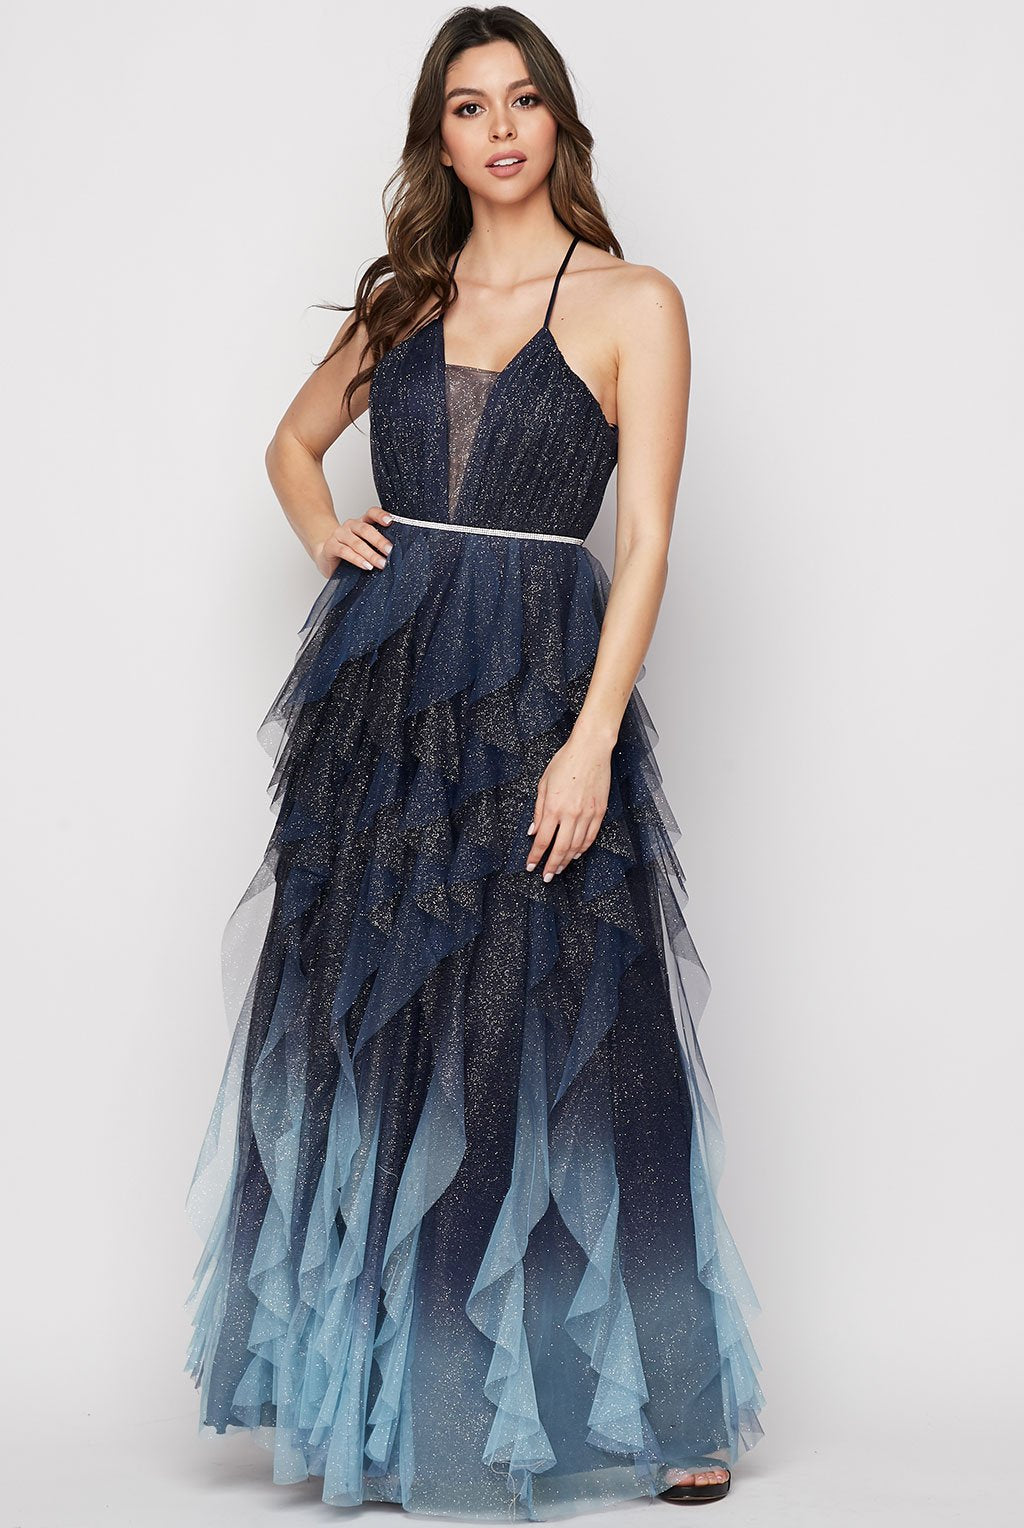 Teeze Me | Glitter Ombre Corkscrew Mesh Gown | Navy/Blue